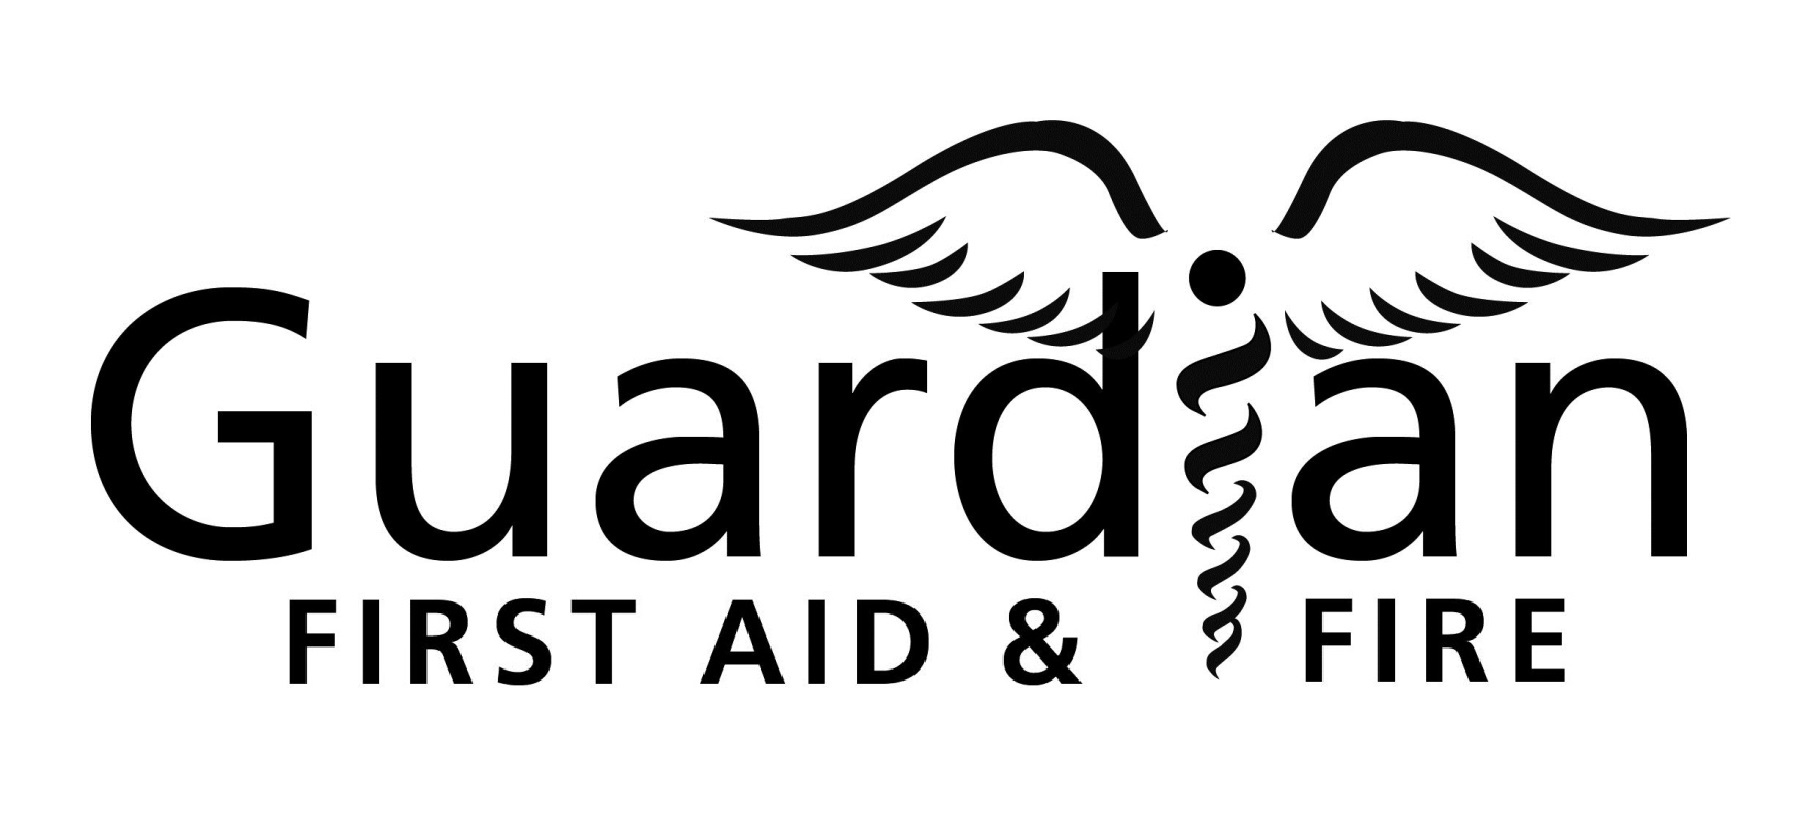 Guardian First Aid & Fire